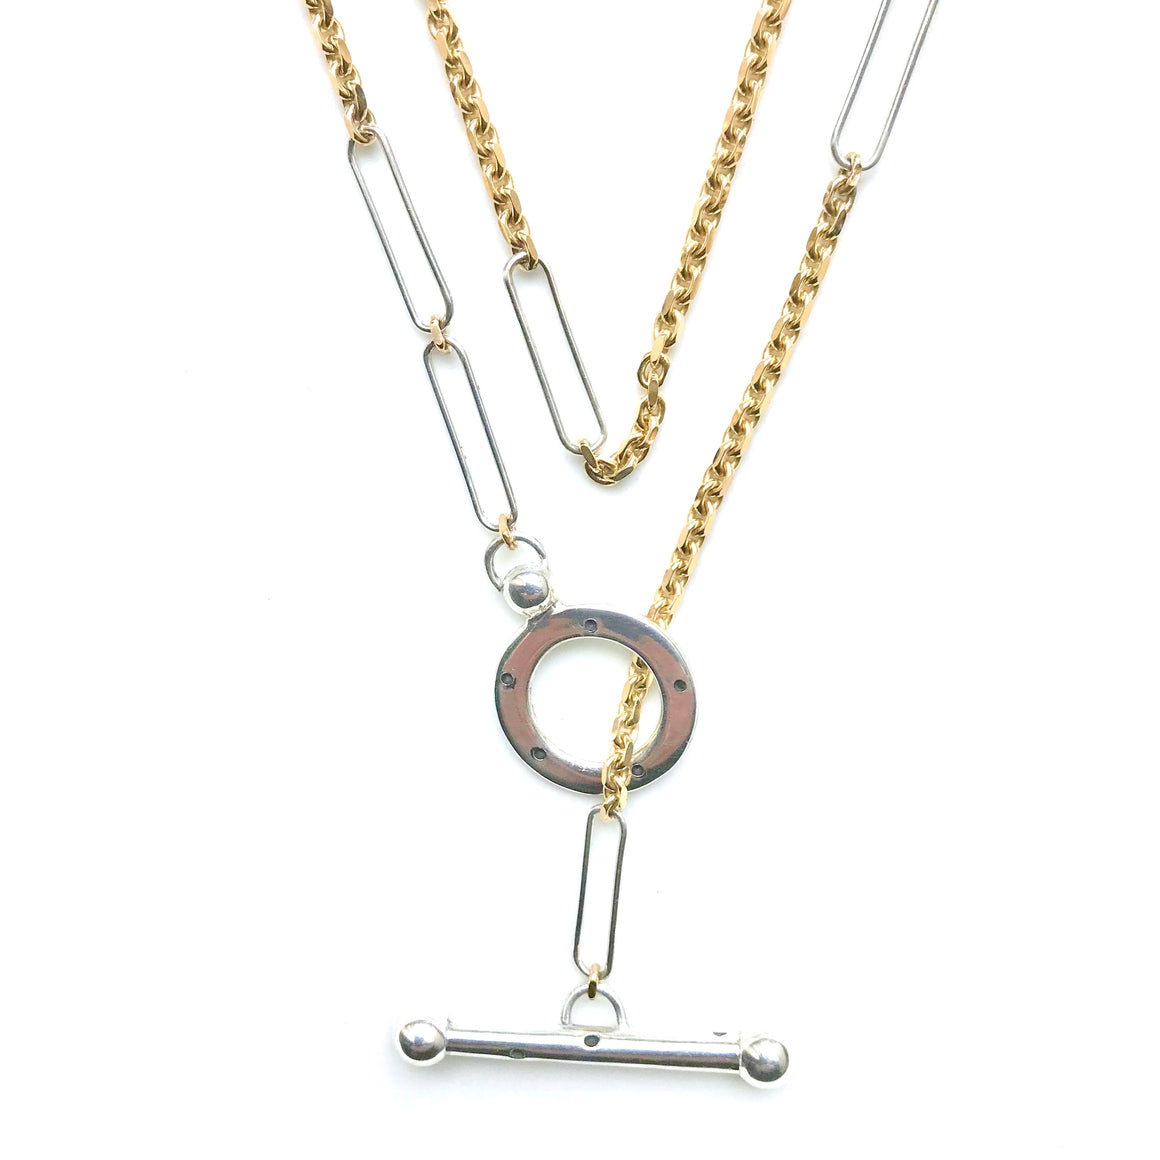 KEPLER 3-WAY 18K AND STERLING SILVER CHAIN